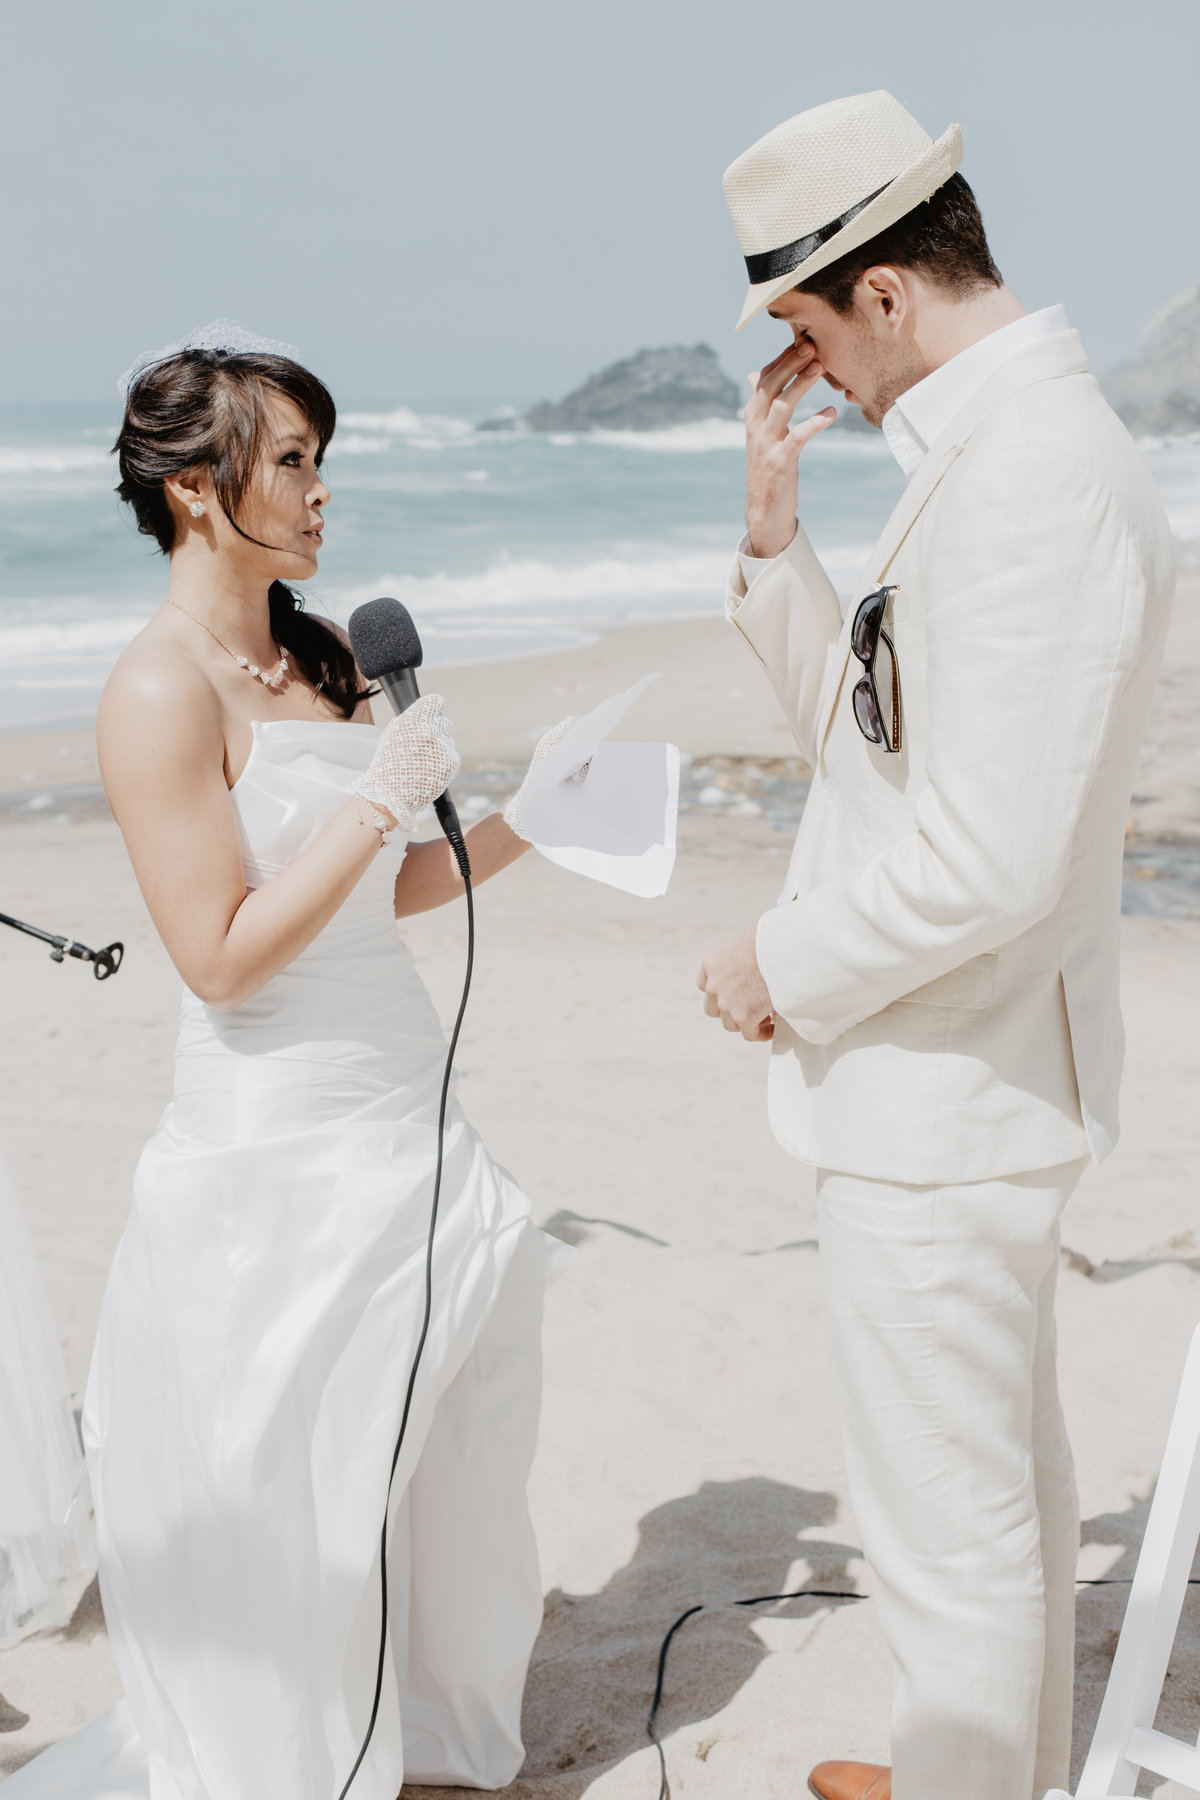 8ValerieVisschedijk - Destinationwedding - Portugal-8